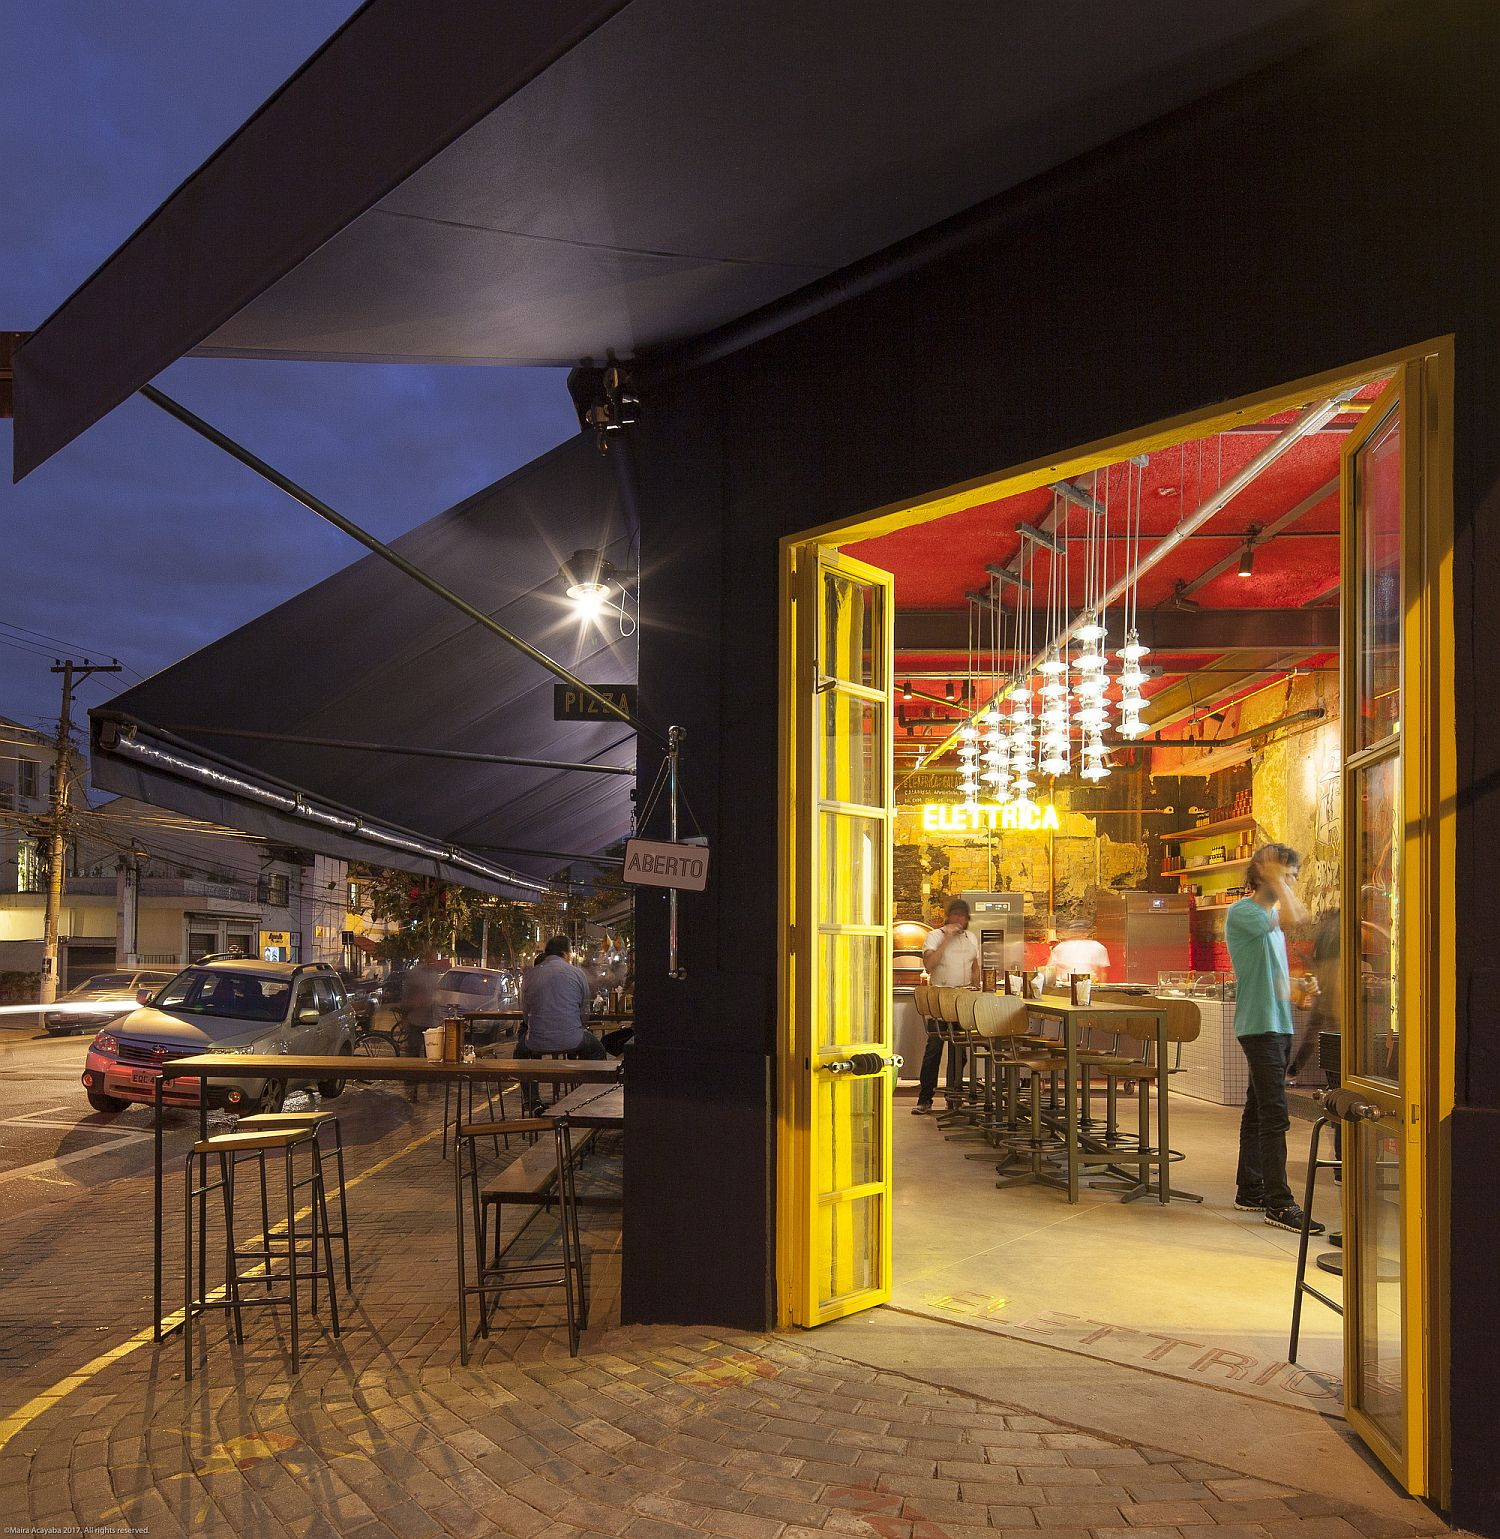 Brilliant-pops-of-yellow-and-red-bring-the-Pizza-Restaurant-alive